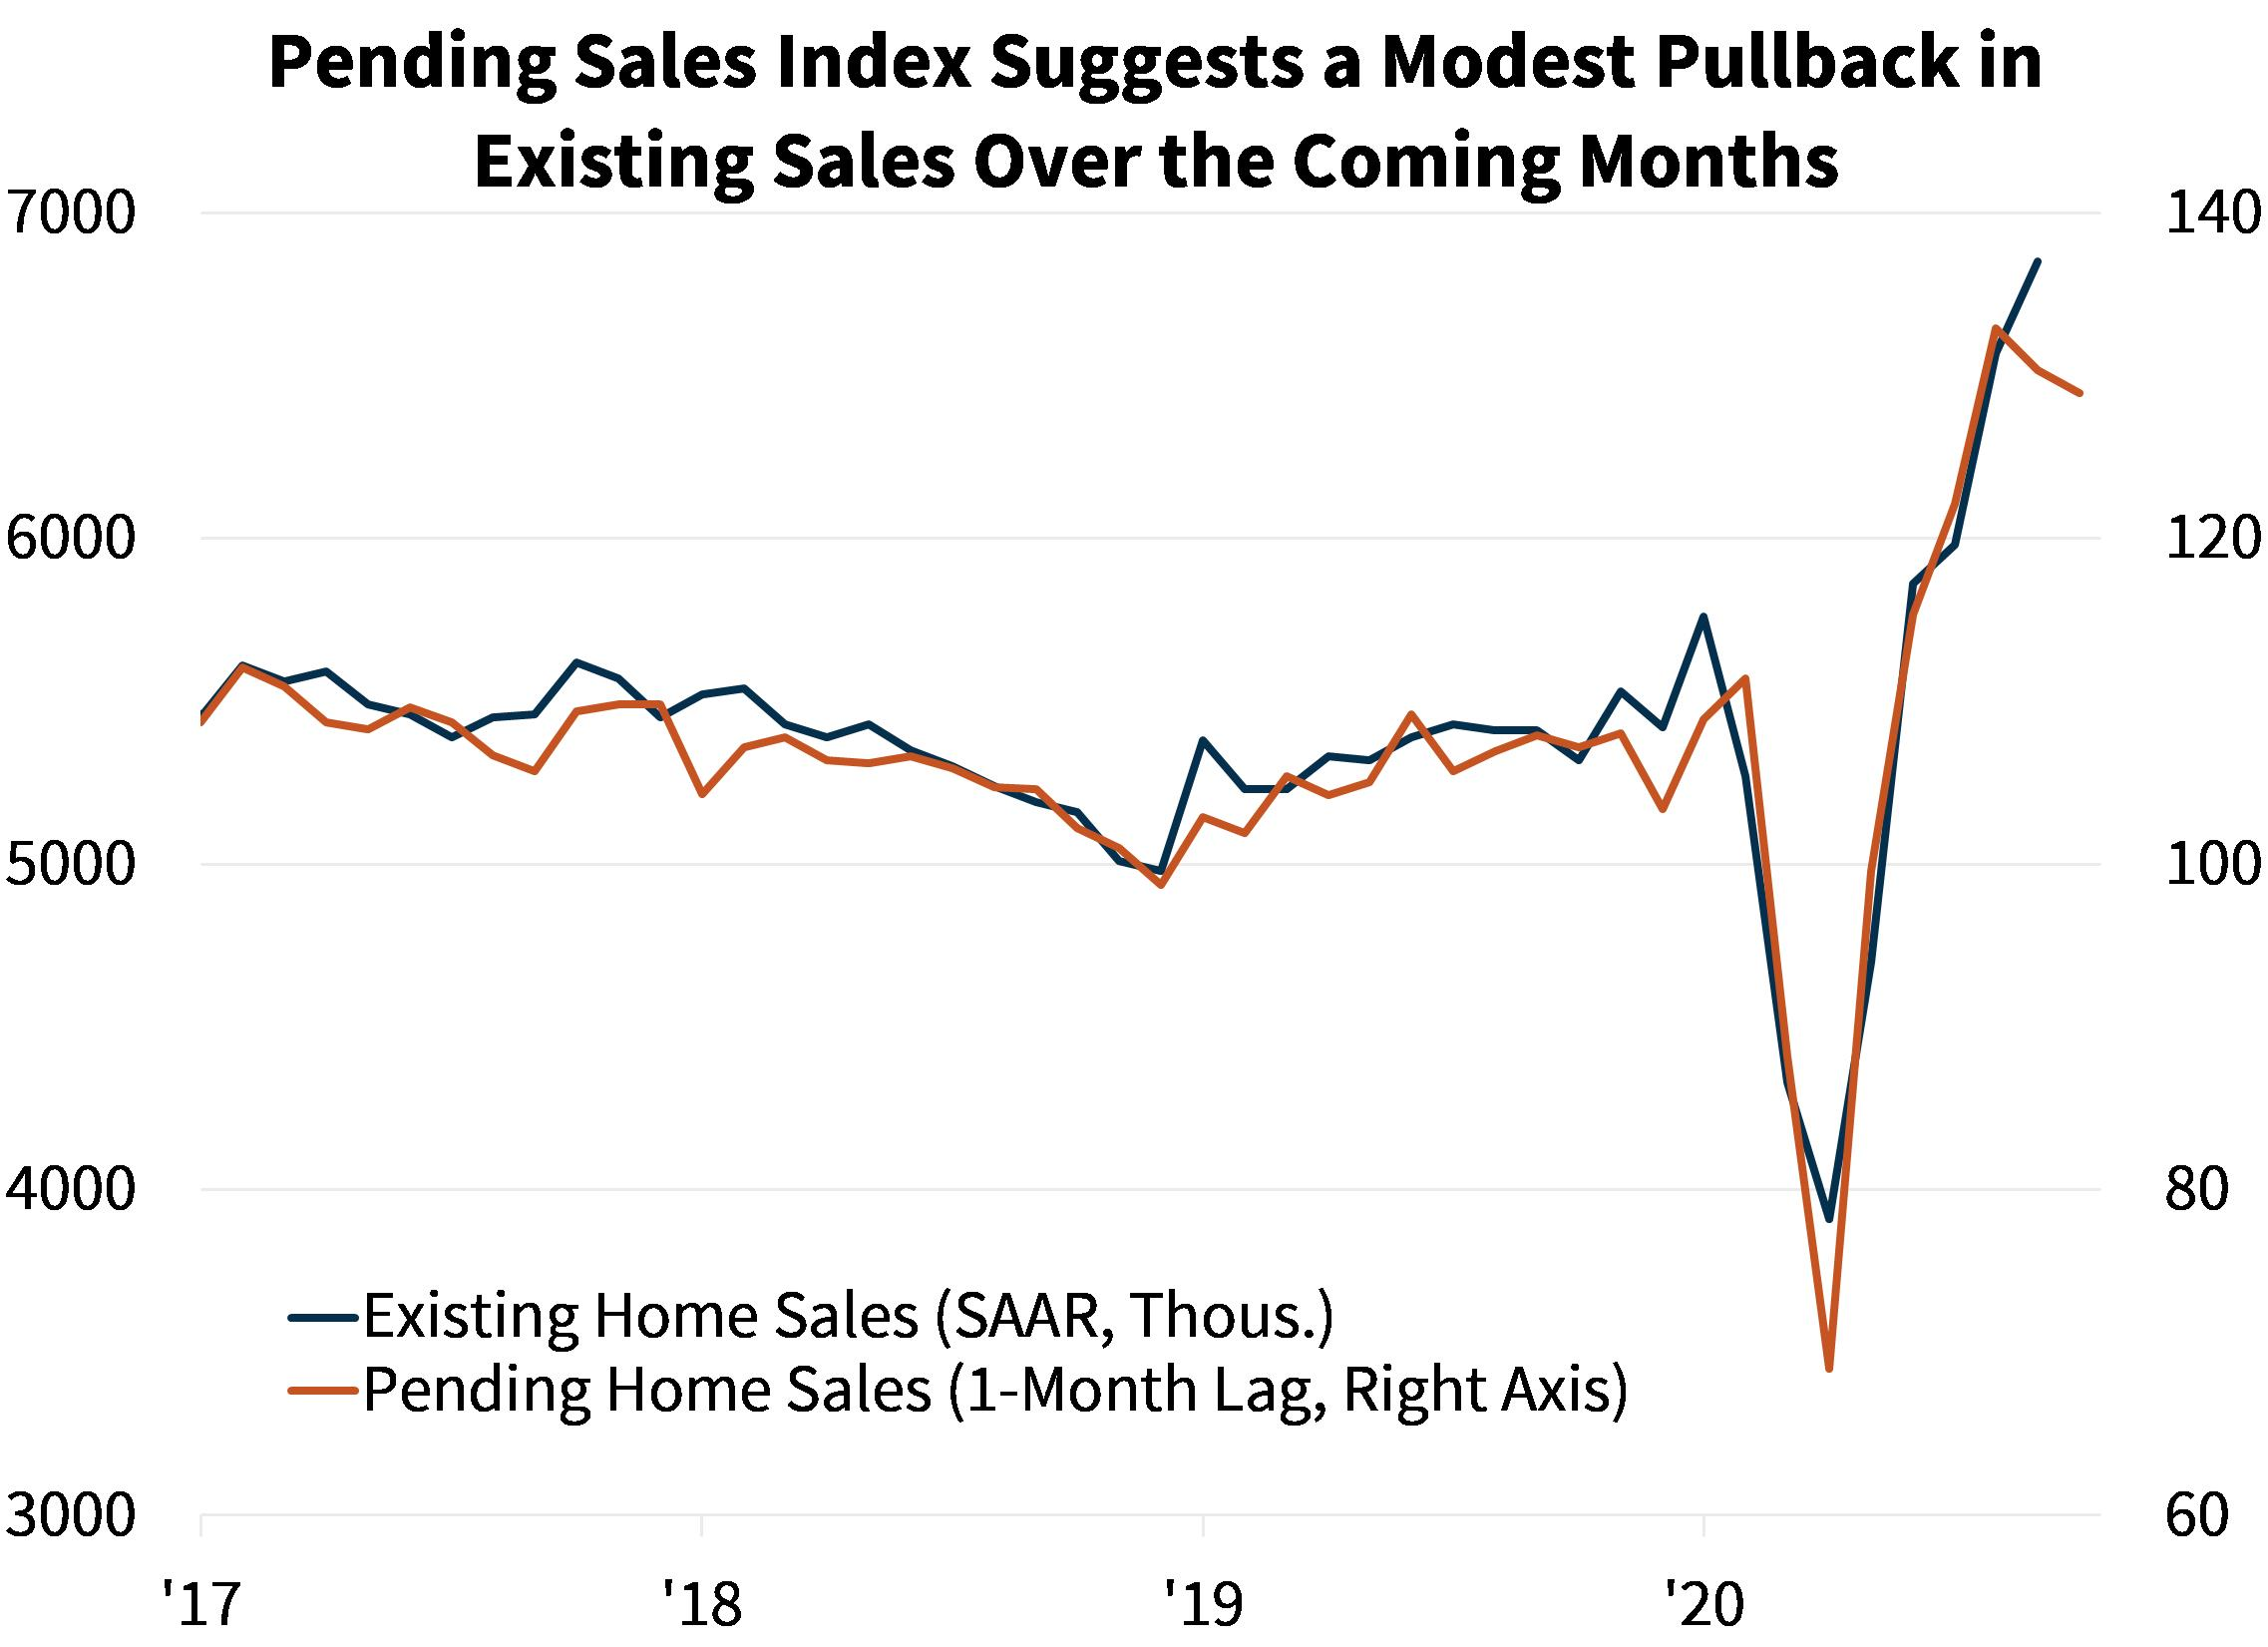 Pending Sales Index Suggests a Modest Pullback in Existing Sales Over the Coming Months